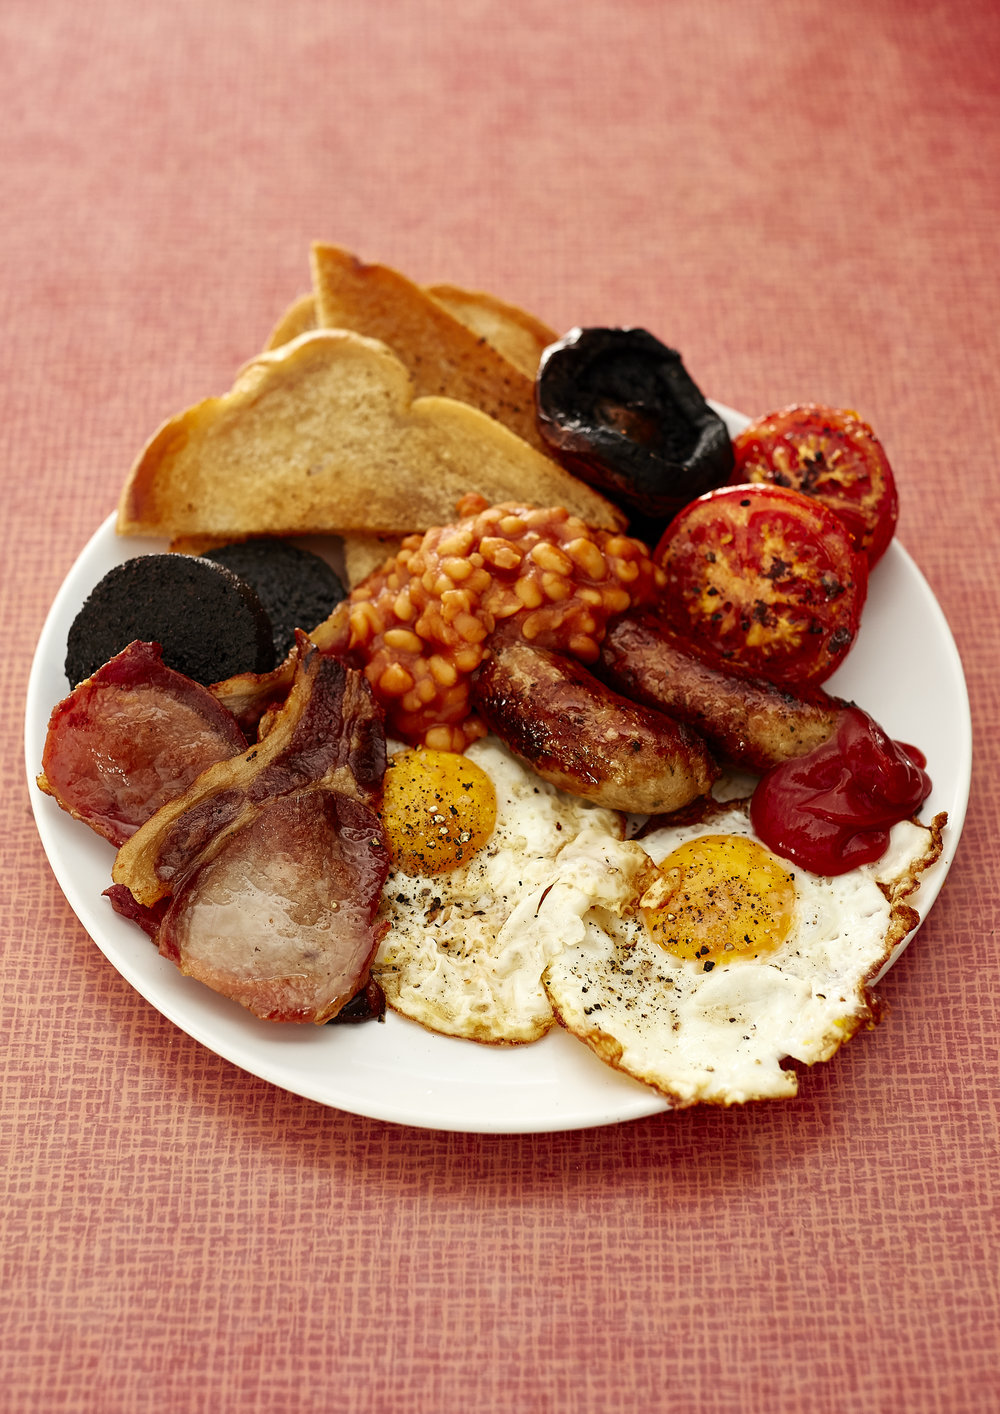 The Full English Breakfast, containing ingredients from many of the major food groups, is a great place to start our food utopia journey.  When we think of food utopia, we picture a system distinct from our current method of exhausting the soil and her nutrients through intensive farming and petrochemicals. True food utopia involves food production within our means, and a deeper connection to the food and its origin.  In this series we look at possible sustainable food futures through food photography by exploring how we could replace the components of a Full English Breakfast. All of the aspects of a Full English are static throughout the year - not changing with the seasons or gradual climate adaptations. If we were to incorporate these simple factors into what we ate, we could see a food system that aligns much more closely with the environment in which it's grown. We at Future Farm Lab look to revolutionise the food system by putting farmers at the centre of the food chain - through connecting them with retailers, consumers and technology. Considering farming practises at the heart of what we eat will tie us intrinsically to more seasonal ingredients that work with the land rather than against it, and are healthier for us and our society as a result. Credits: Photography by Joe Sarah Photography ¦ @joesarahphoto Curated by Future Farm Lab ¦ @futurefarmlab Abi Aspen Glencross, Phoebe Tickell, Sophie Perry Food Stylist: Myles Williamson Prop Stylist: Freya Cardiff Graphic Design: Tom Groves Special thanks: Jamie and Michael at May Studio ¦ King's College Cultural Institute ¦ Somerset House ¦ New Harvest ¦ ESRC ¦ All the suppliers For more info check out: http://www.kcl.ac.uk/Cultural/whatson/eventrecords/160701-Paths-to-Utopia.aspx